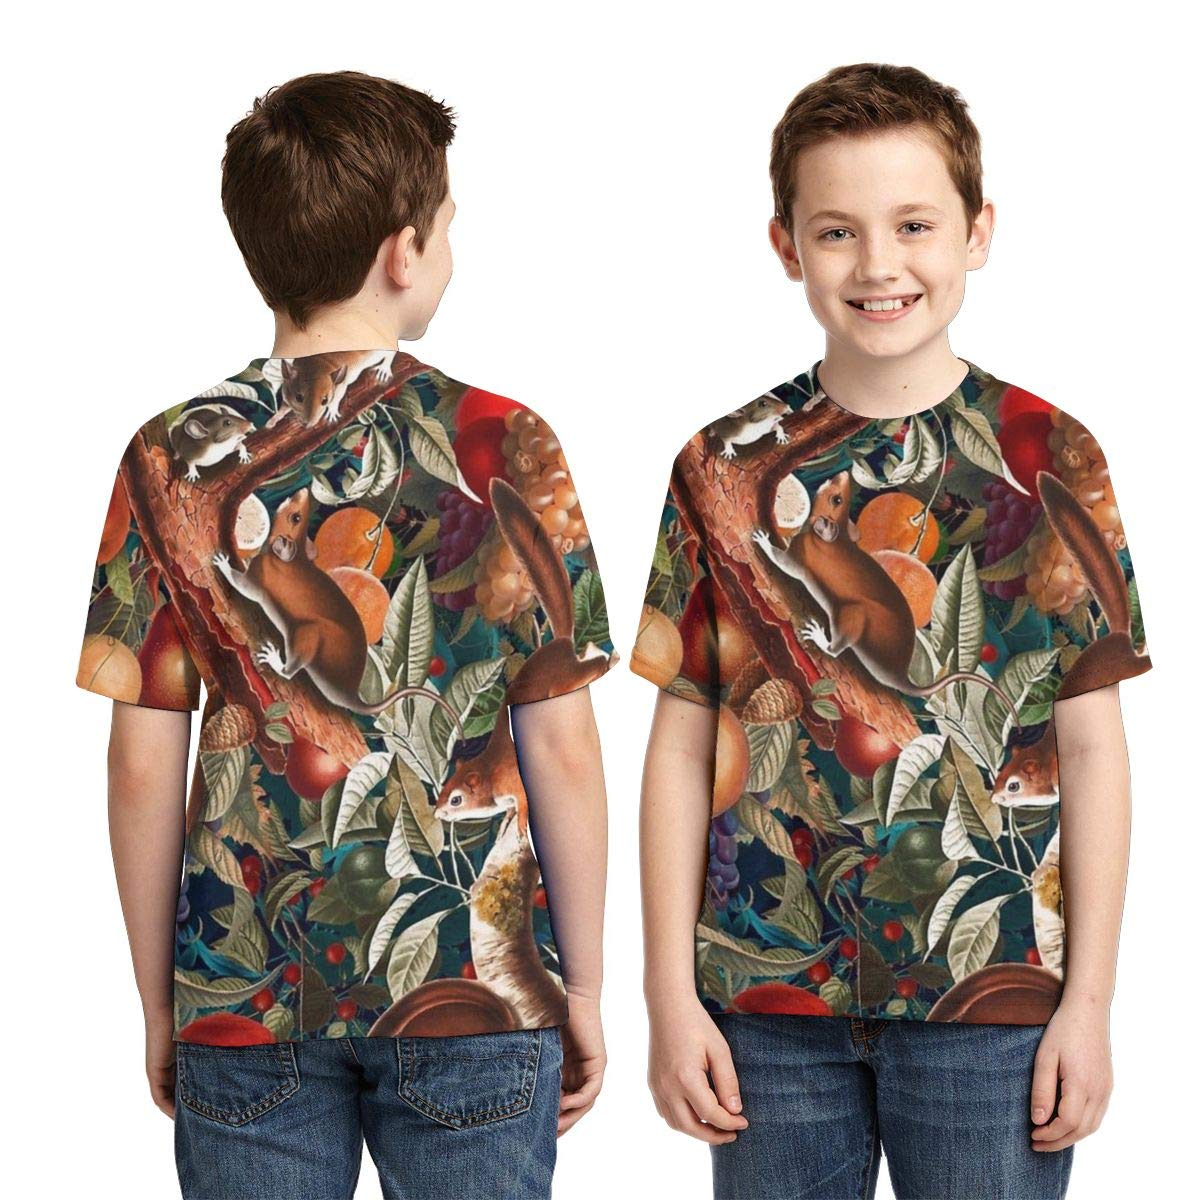 OPQH Boys Short Sleeve Squirrel Magical Garden Woodland Gothic Autumn 3D Print T-Shirts Graphic Tees for Kids Teens